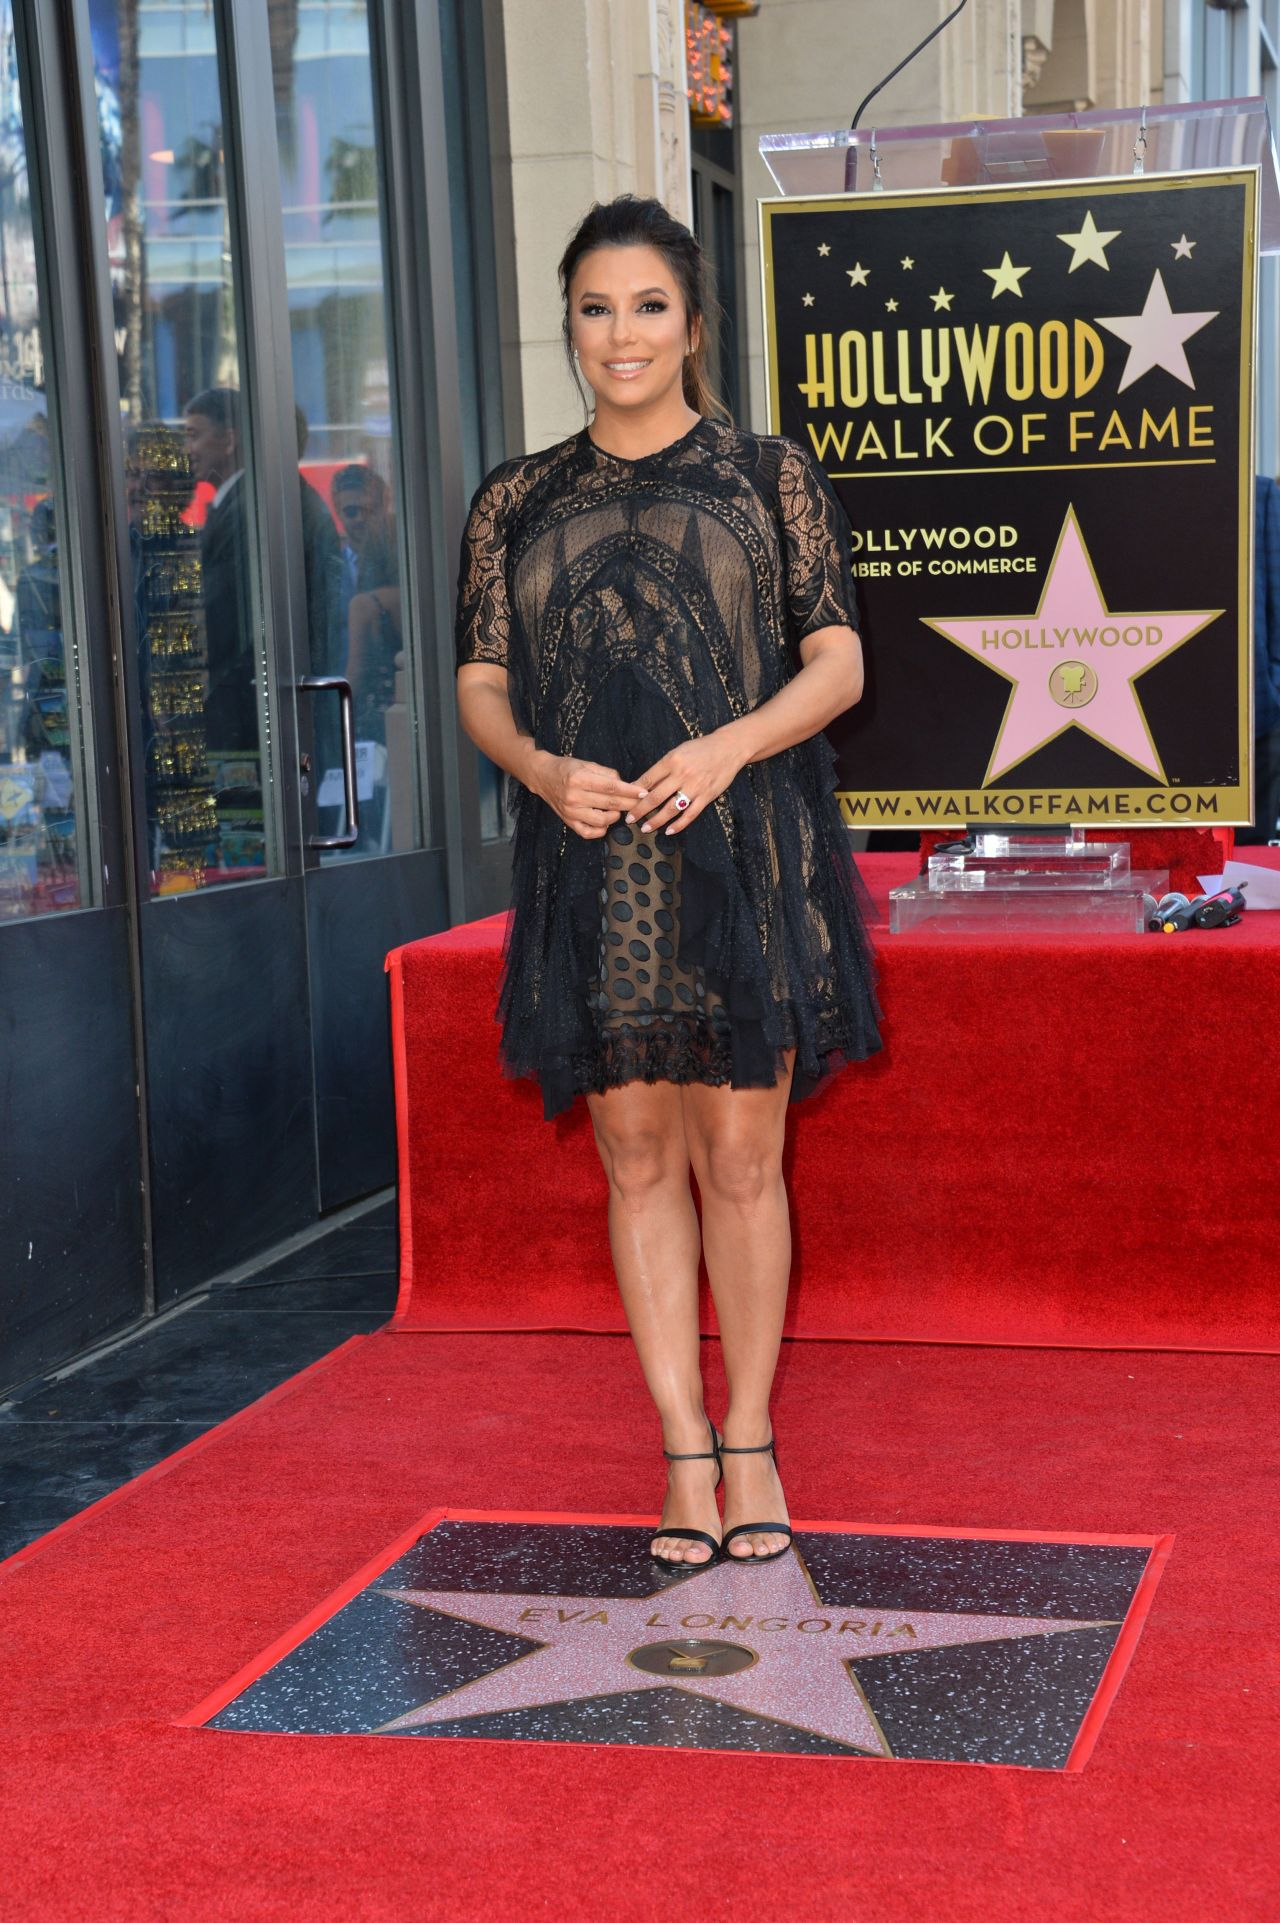 http://celebmafia.com/wp-content/uploads/2018/04/eva-longoria-hollywood-walk-of-fame-in-la-13.jpg